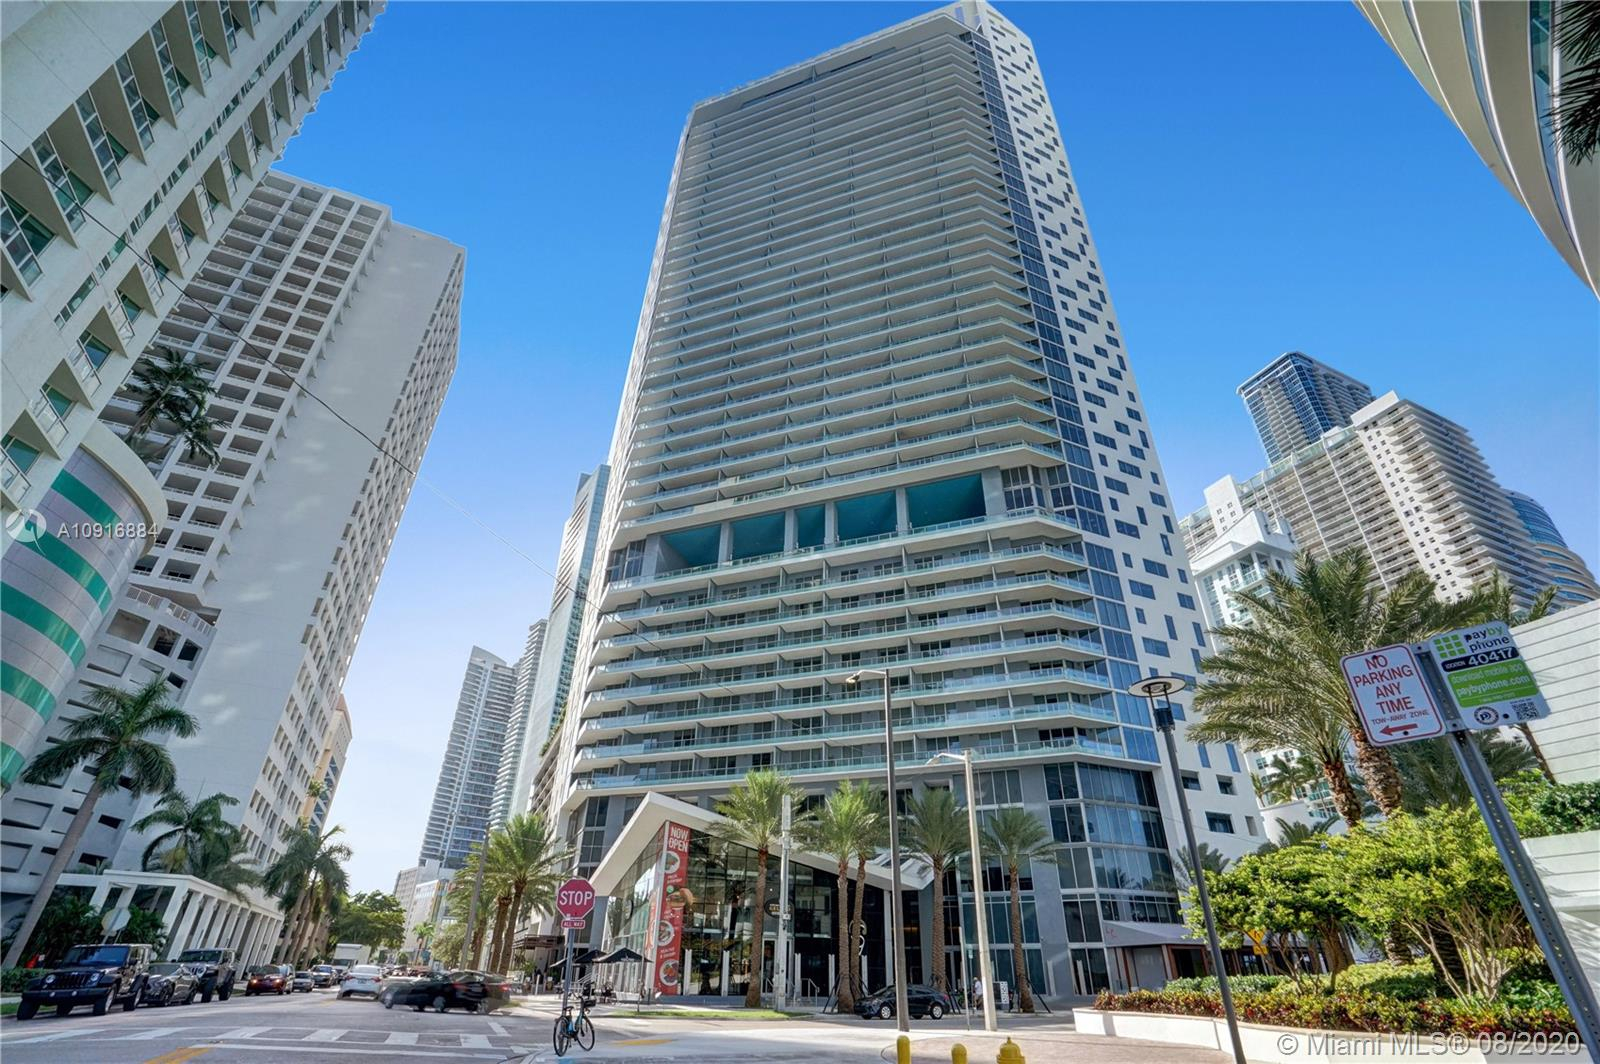 Beautiful 2bed 2 bath unit with high end finishes on a state of the Art Luxury Building, wood inspired porcelain, motorized window treatment, New washer & Dryer whirlpool, Italian customized door, AC Bosch with Smart Eco bee termostate, JennAir appliances, smart Phillips HUE light system, customized interior closet, wine cooler, more than $40,000 on upgrades. Five star Building with a lot of amenities such as 24 hour concierge, valet, private lounge, roof top pool and bar, lap pool, steam room, luxury spa, fitness center, and more.. Just bring your toothbrush... Show and sell